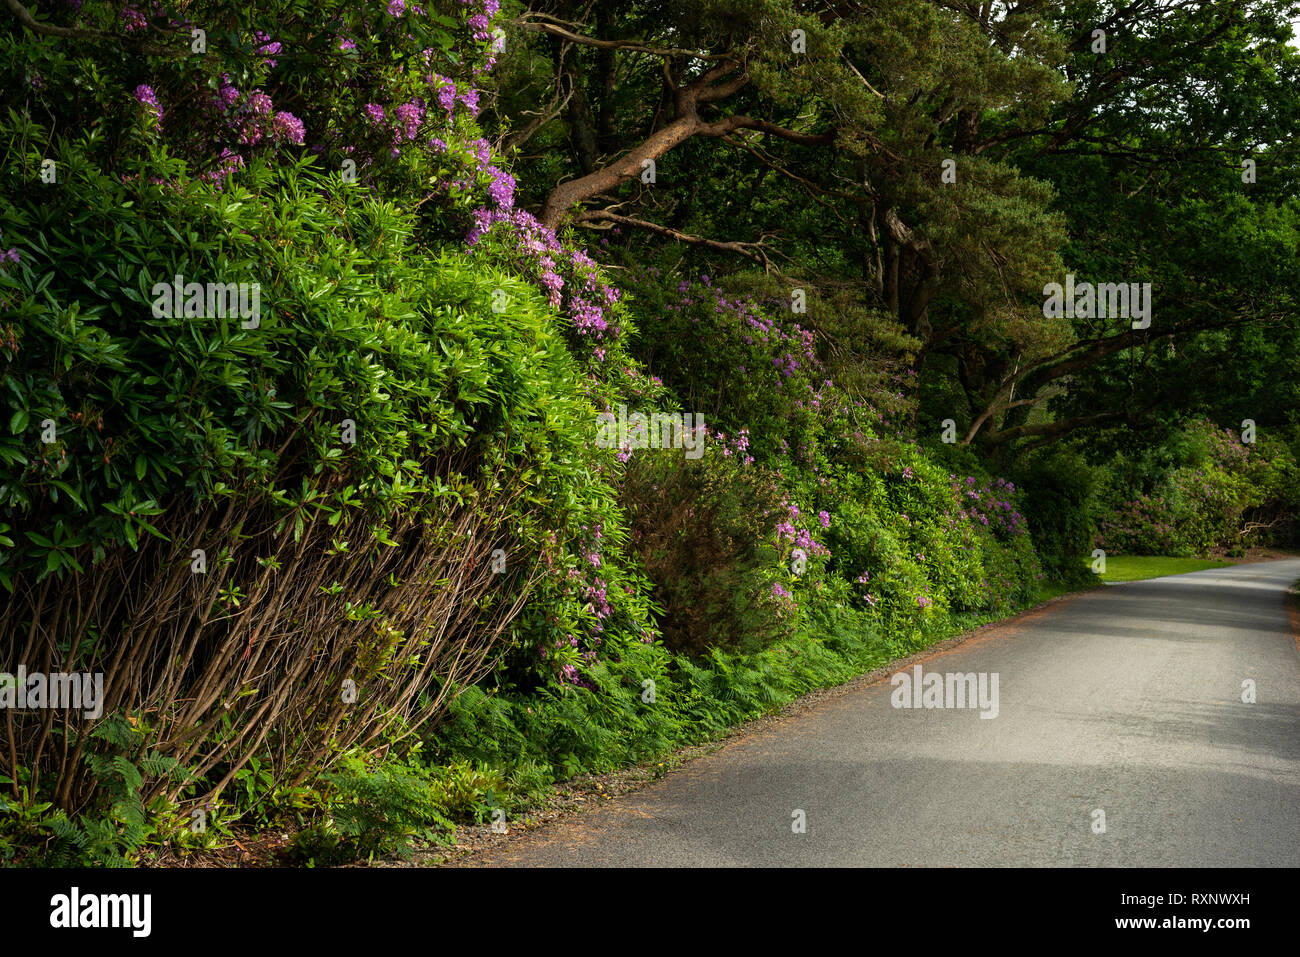 Rhododendron infestation in Killarney National Park,County Kerry,Munster,Ireland.This non-native harmful invasive species threaten the Park's beauty. - Stock Image